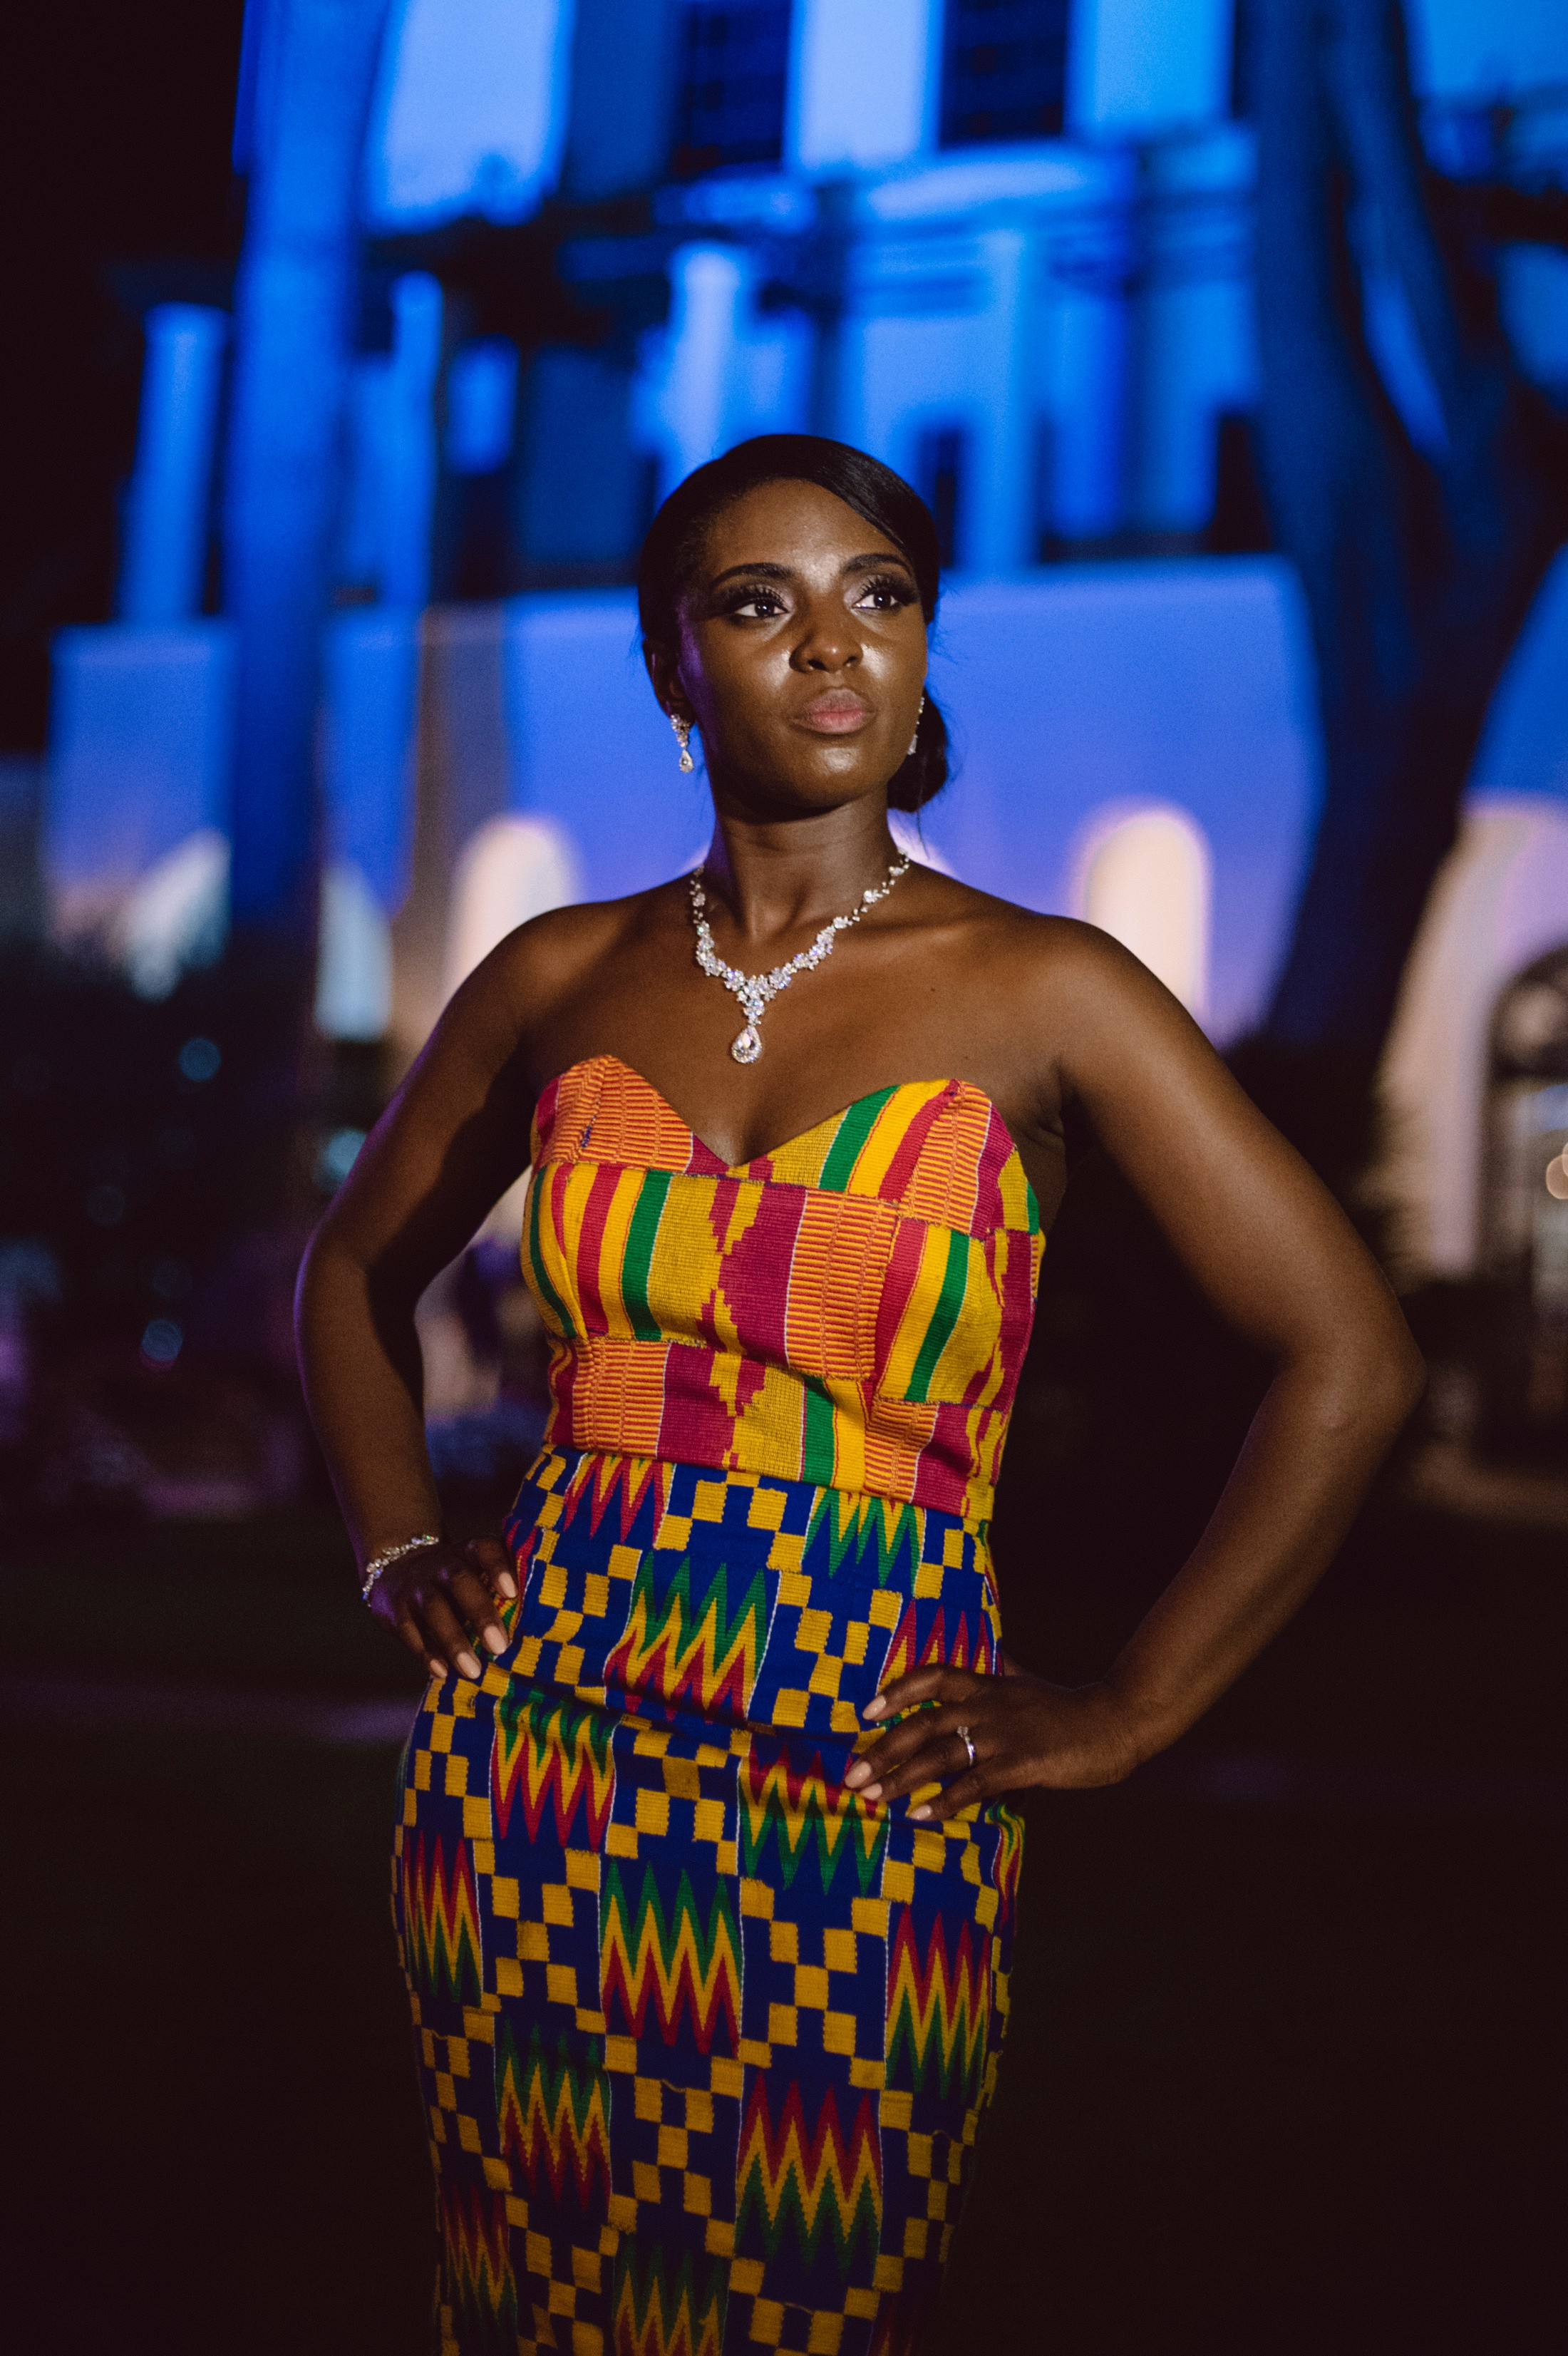 bride's portrait with colorful african dress